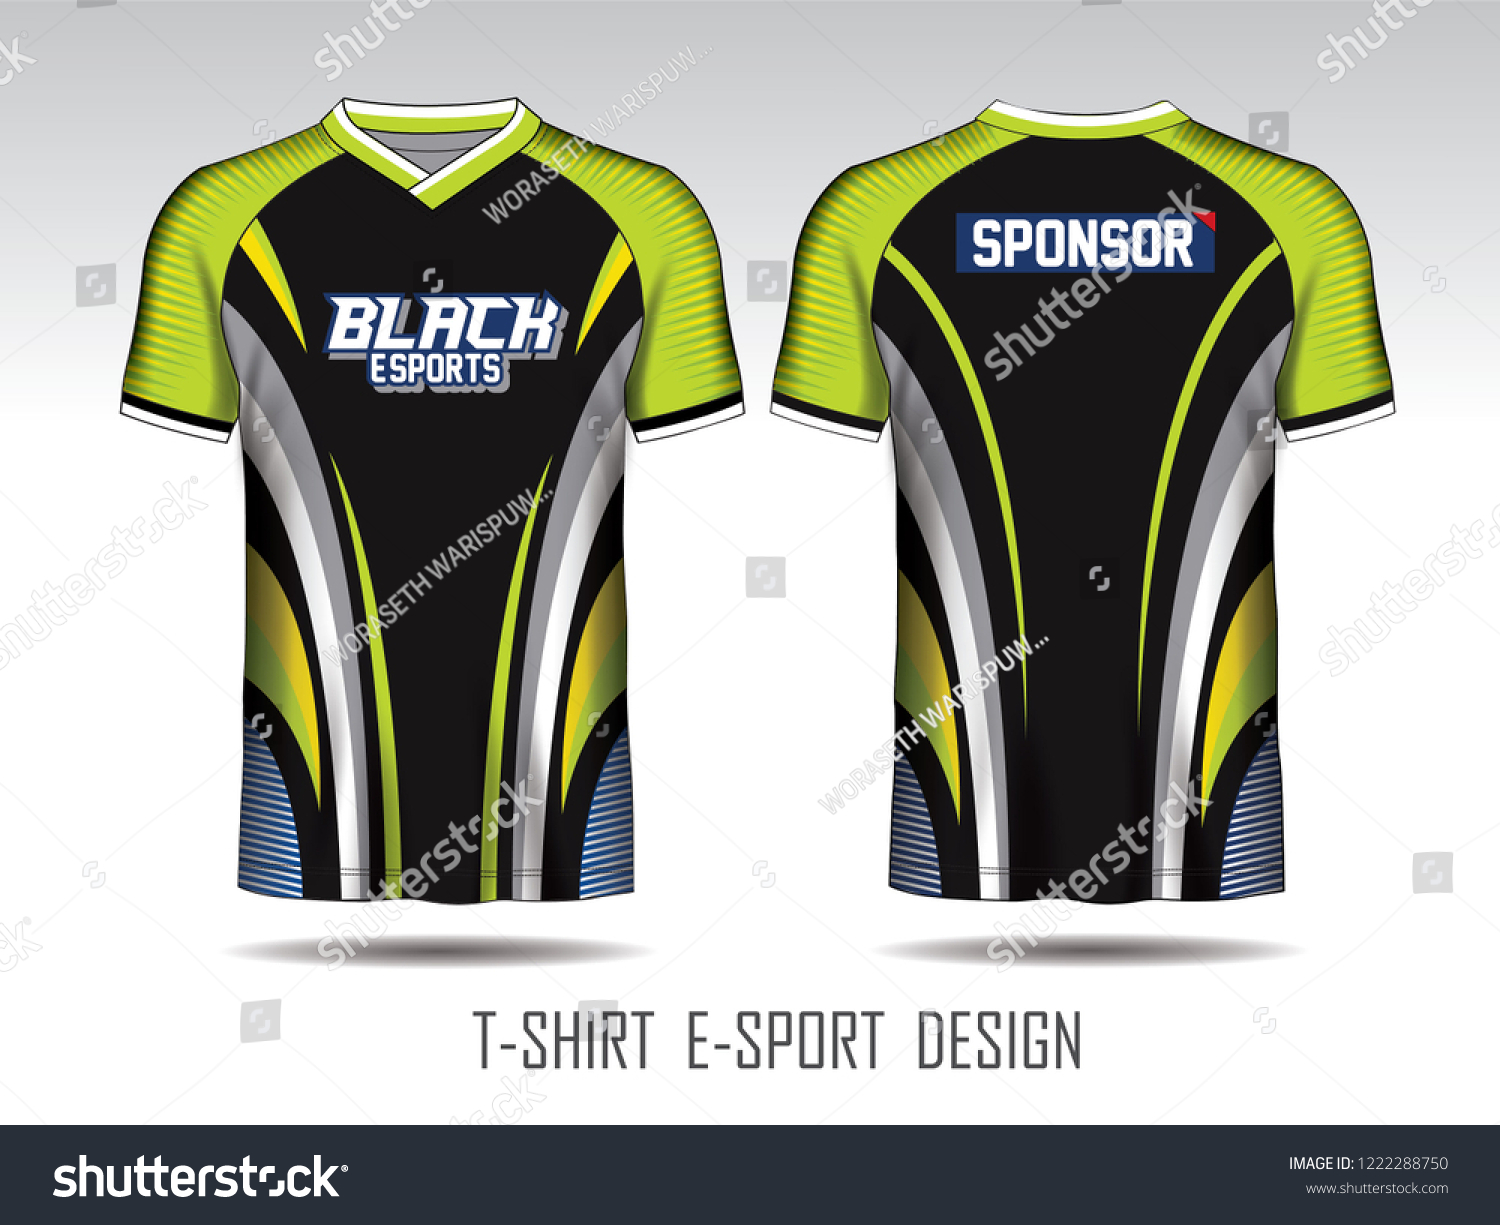 Black Green Layout Esport Tshirt Design Stock Vector ...